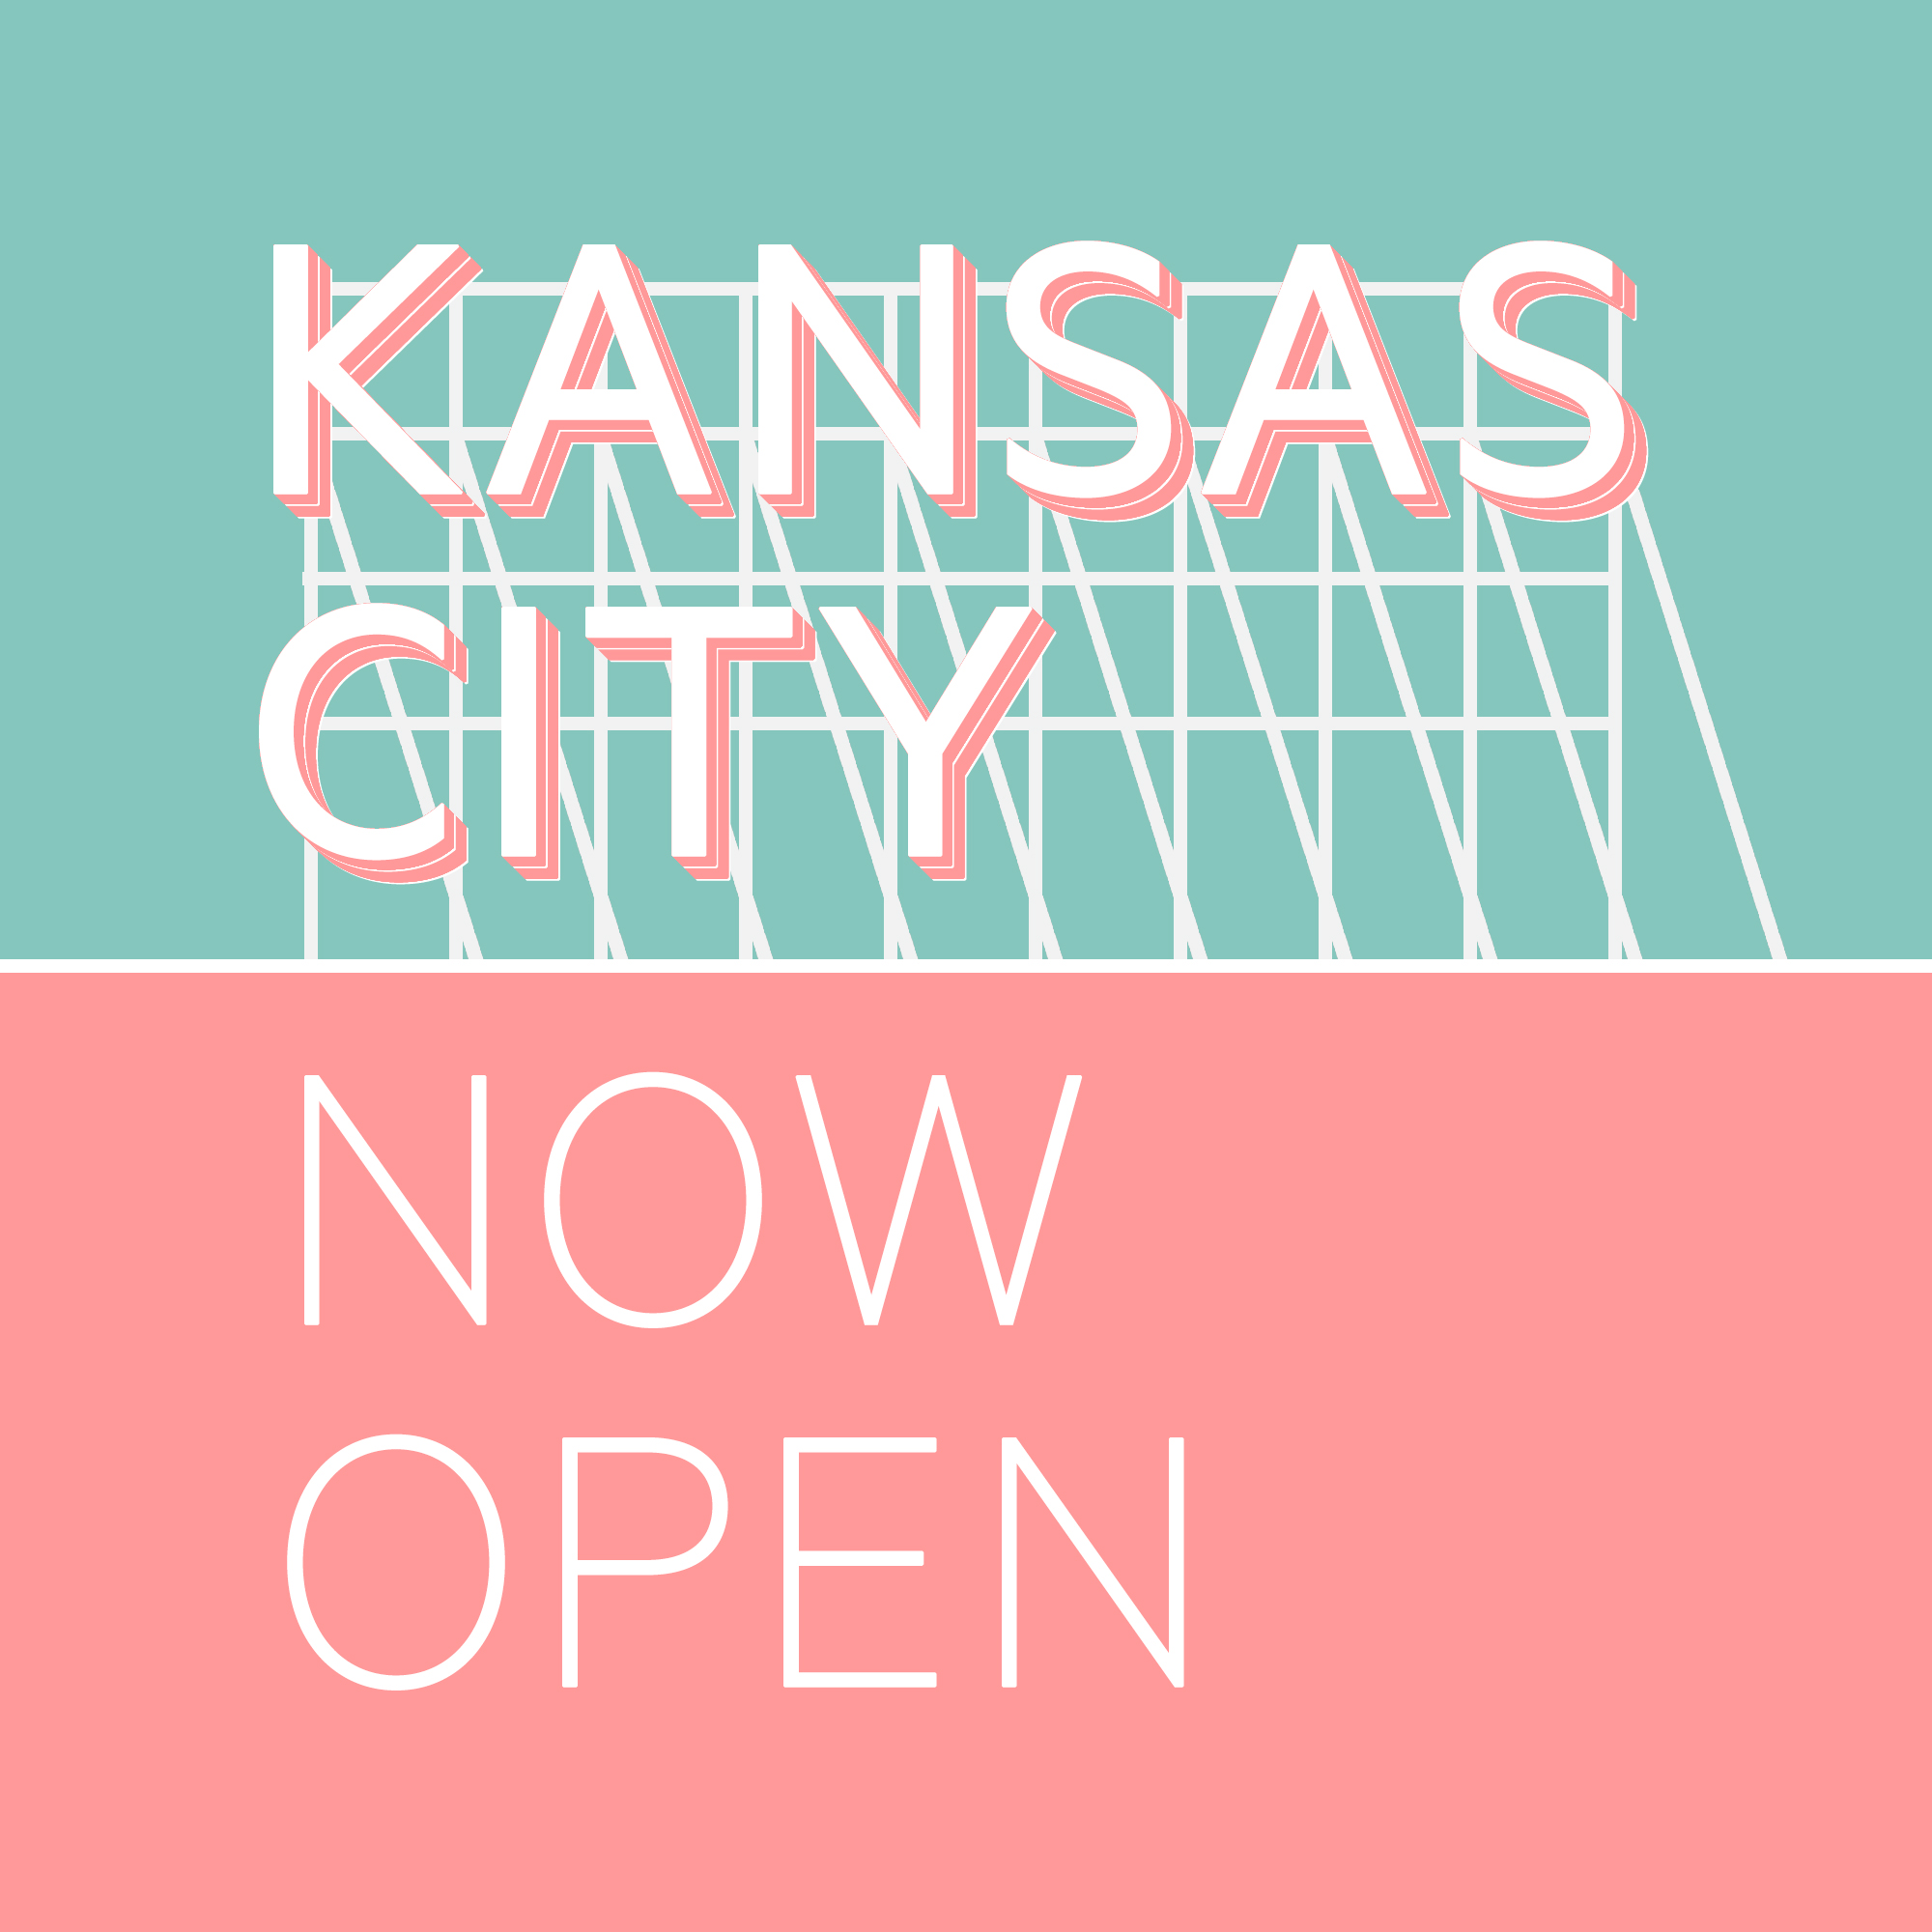 Nadeau Kansas City - Now Open